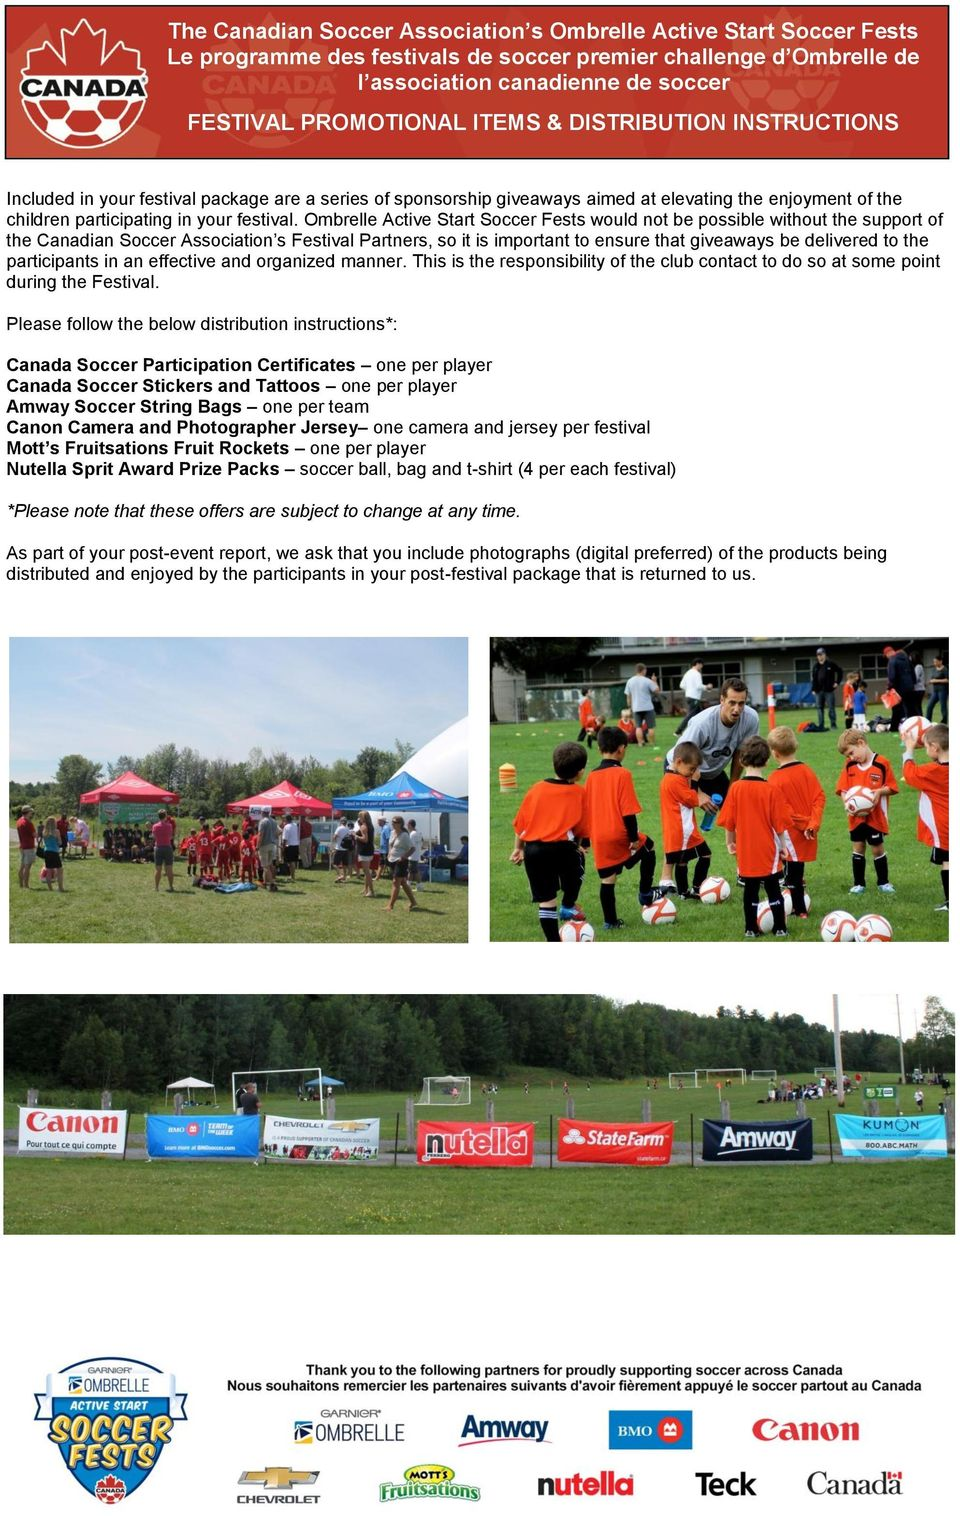 Ombrelle Active Start Soccer Fests would not be possible without the support of the Canadian Soccer Association s Festival Partners, so it is important to ensure that giveaways be delivered to the